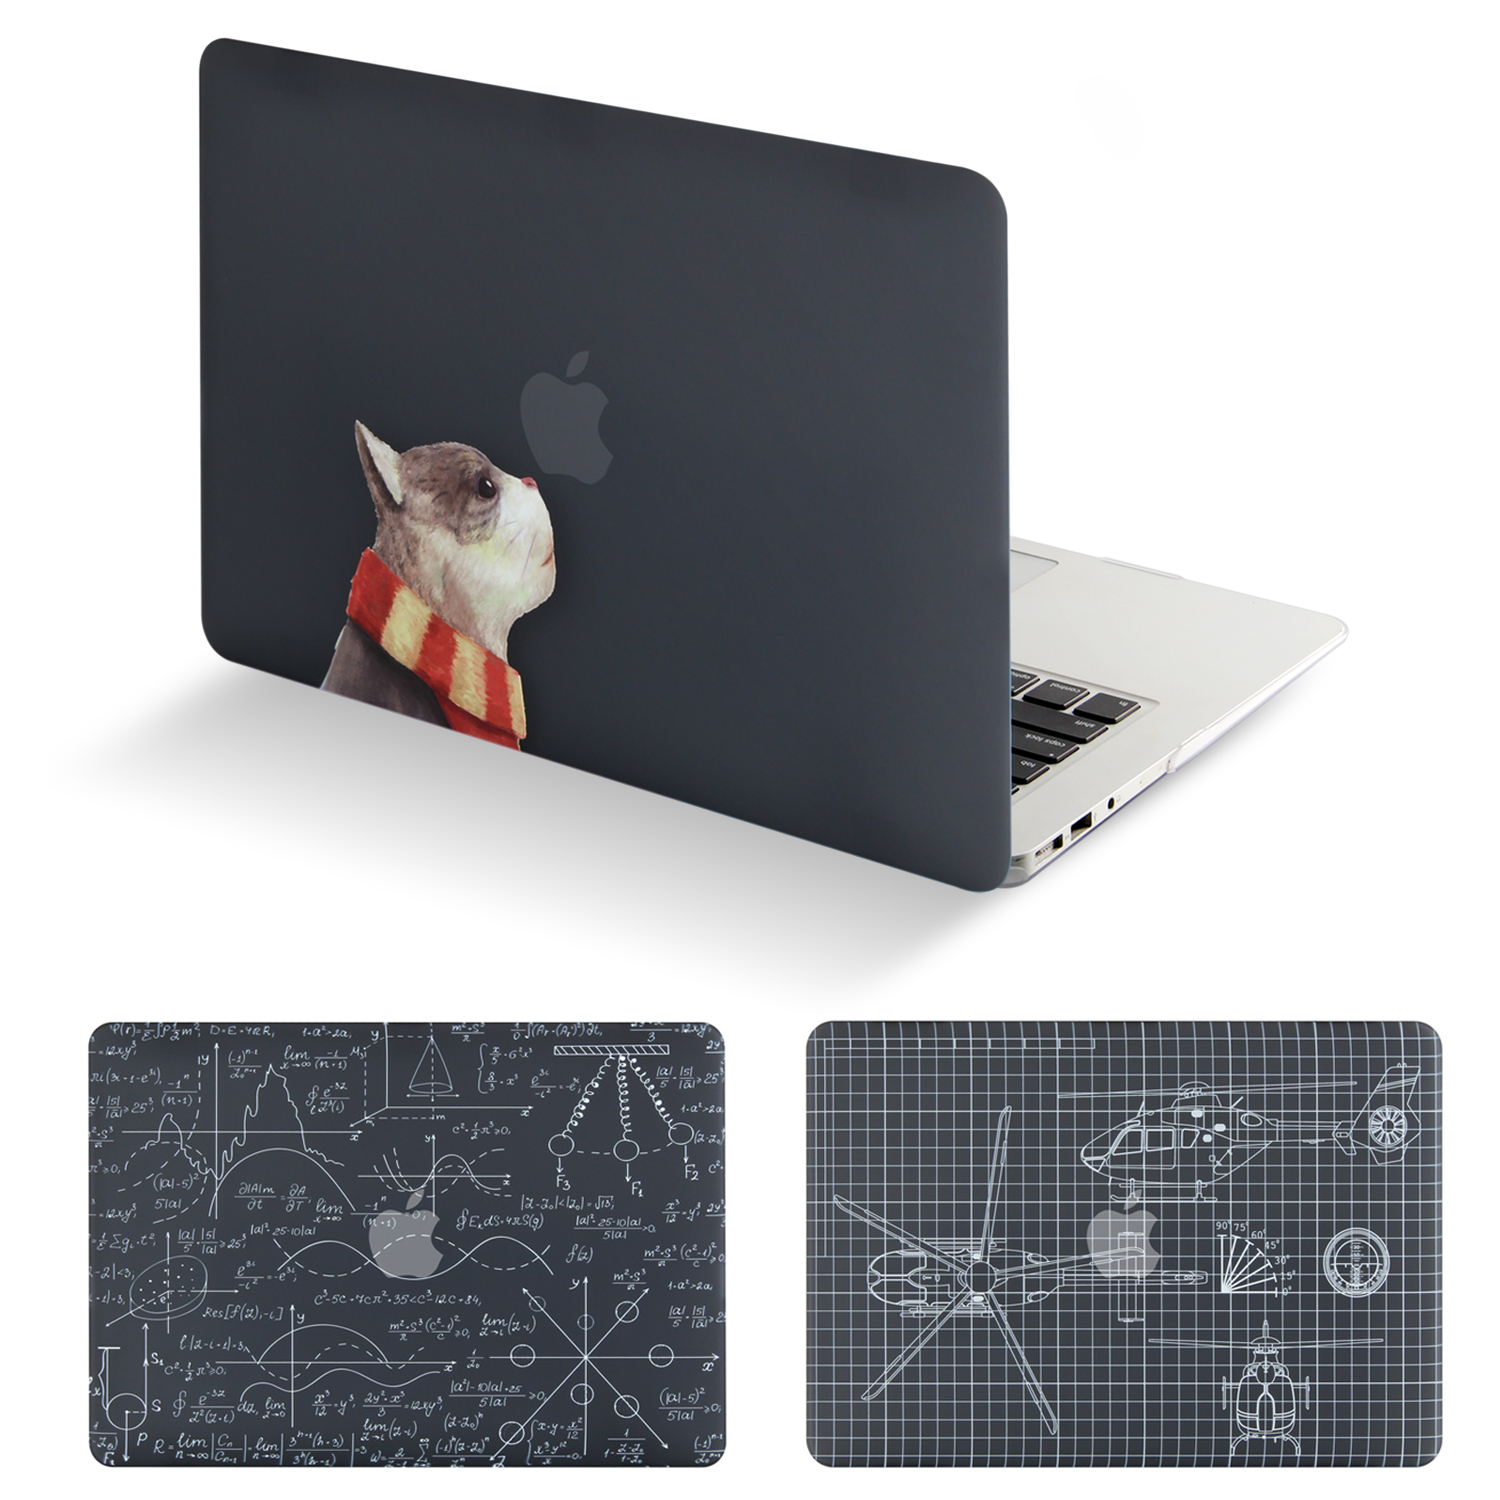 New Print Universe <font><b>Laptop</b></font> Case For MacBook Air Pro Retina <font><b>11</b></font> 12 13 15 <font><b>inch</b></font> with Touch Bar + Keyboard Cover image